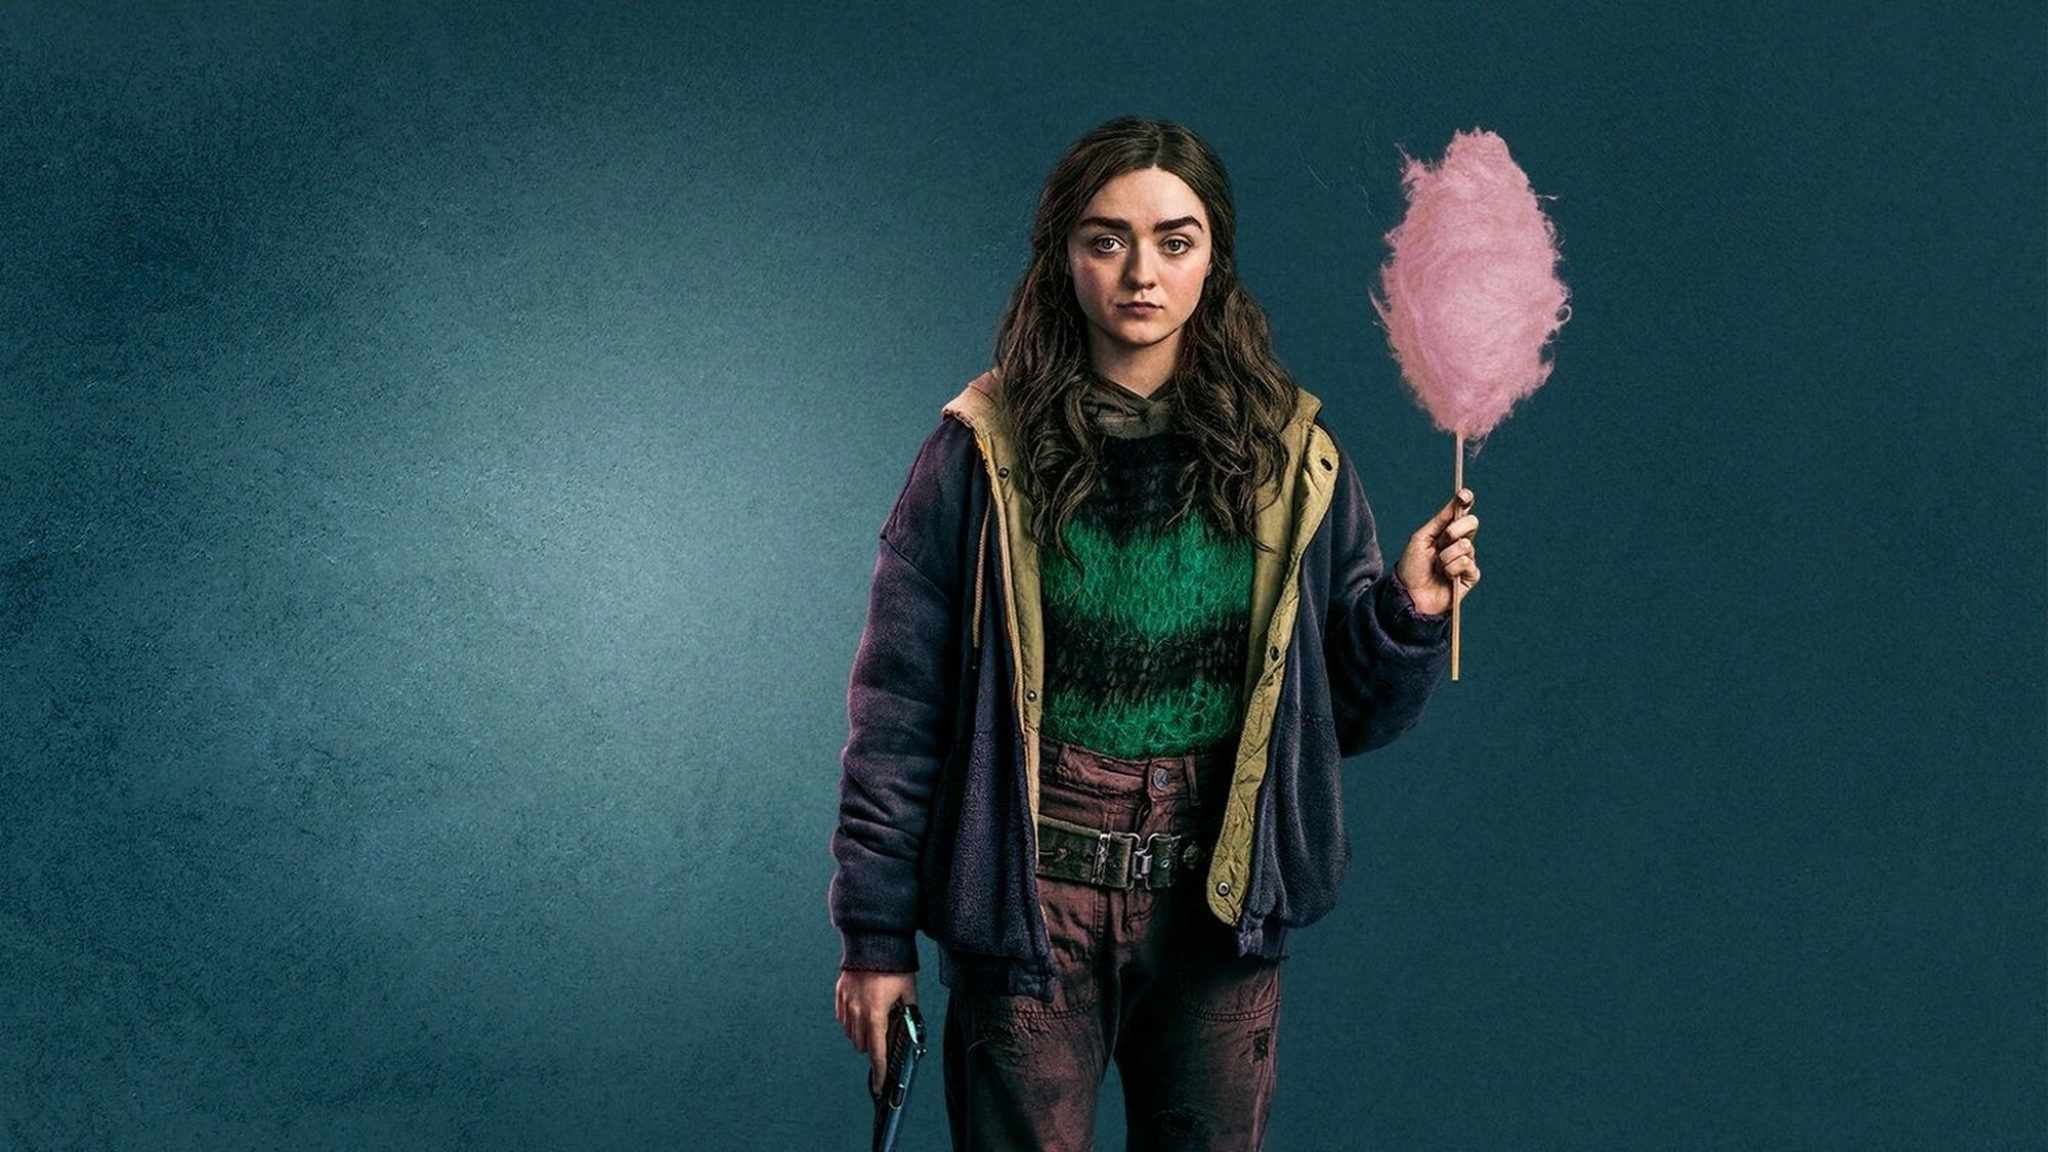 Maisie Williams Two Weeks To Live Wallpaper in 2048x1152 Resolution